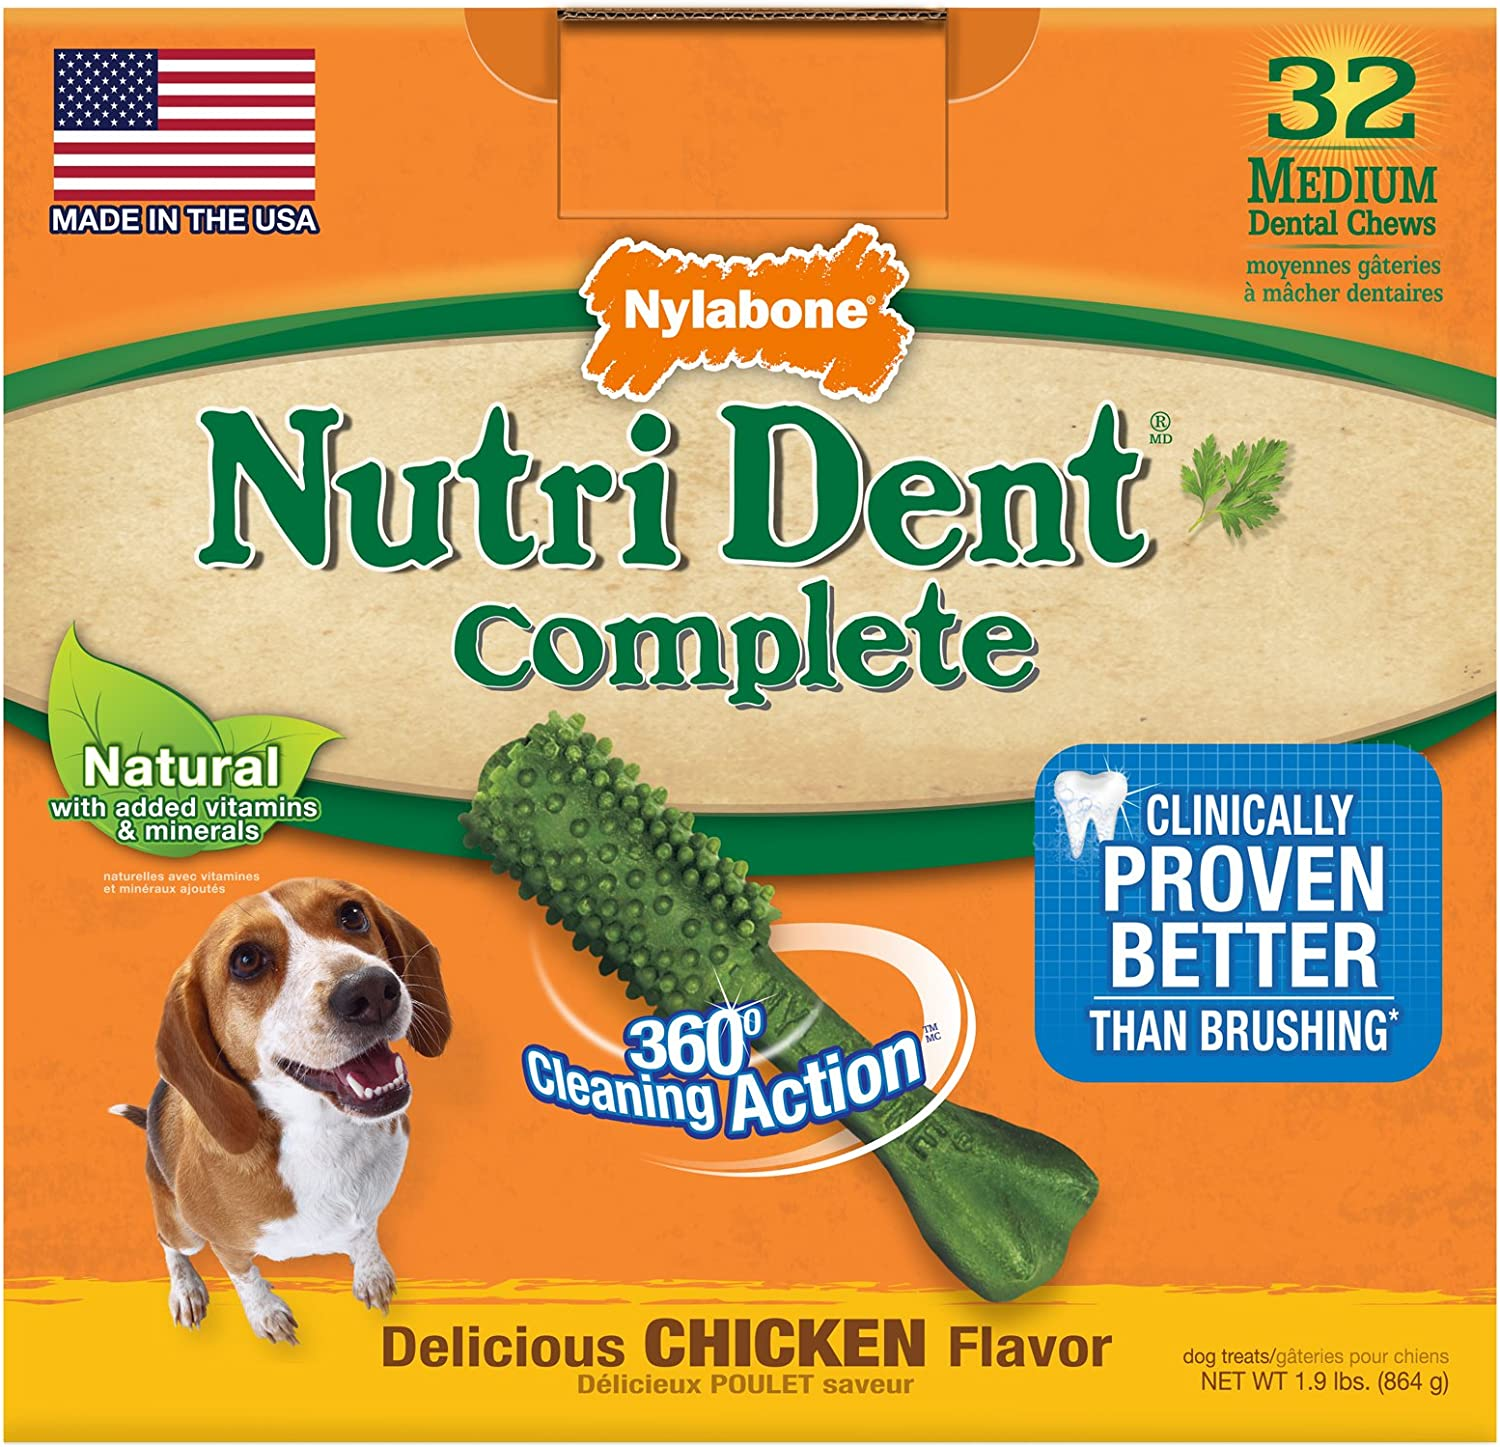 Nylabone Nutri Dent Complete Dog Treat Bones for Medium Dogs up to 35 Pounds